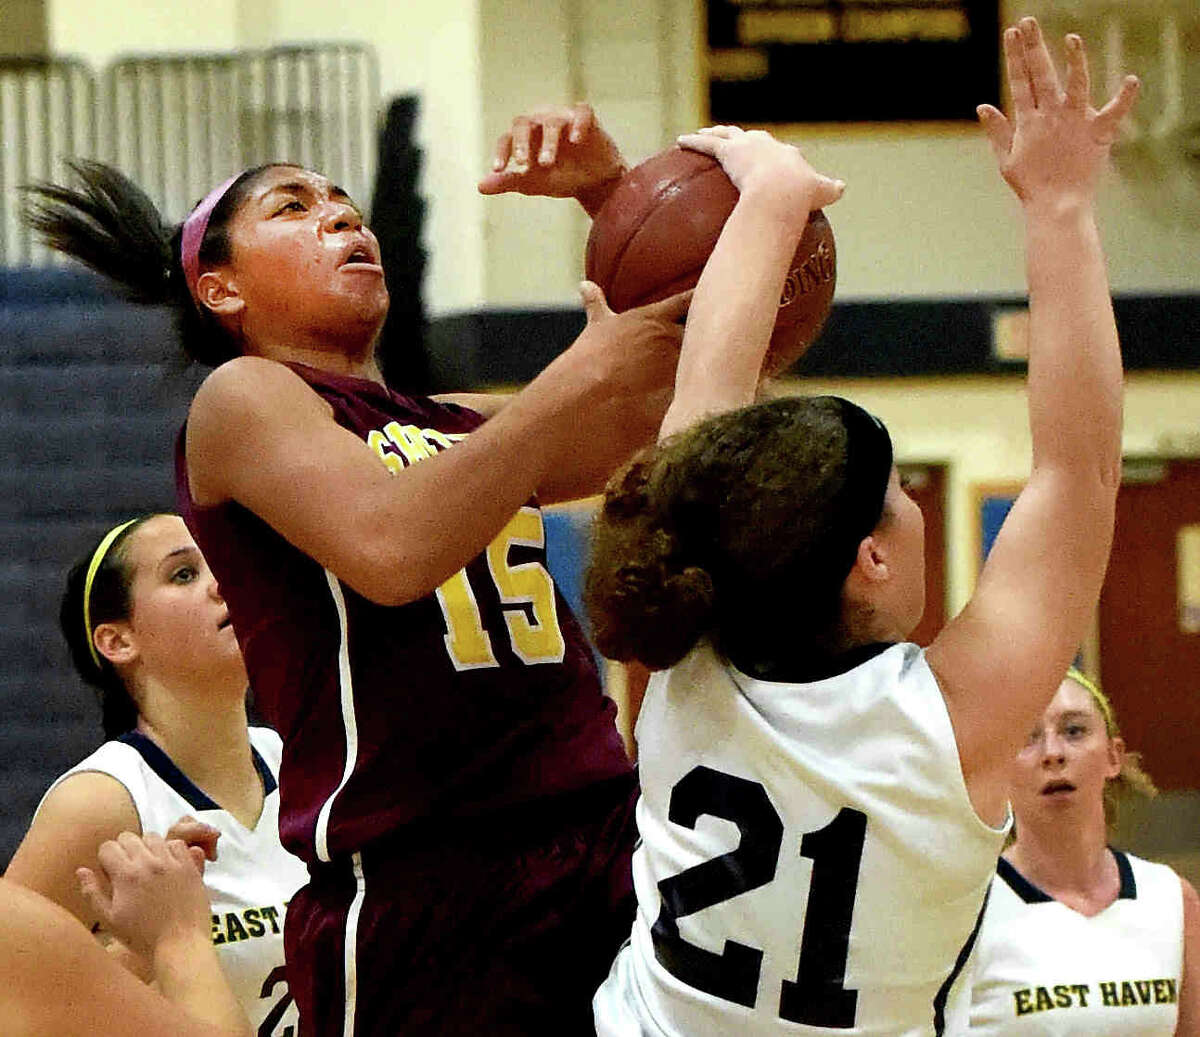 (Photo by Peter Hvizdak - New Haven Register) Joelle Mark Anthony of Sheehan H.S. has her shot blocked by Miranda Gladwin of East Haven H.S. during fourth quarter girls basketball action at East Haven H.S. Wednesday, December 10, 2014.